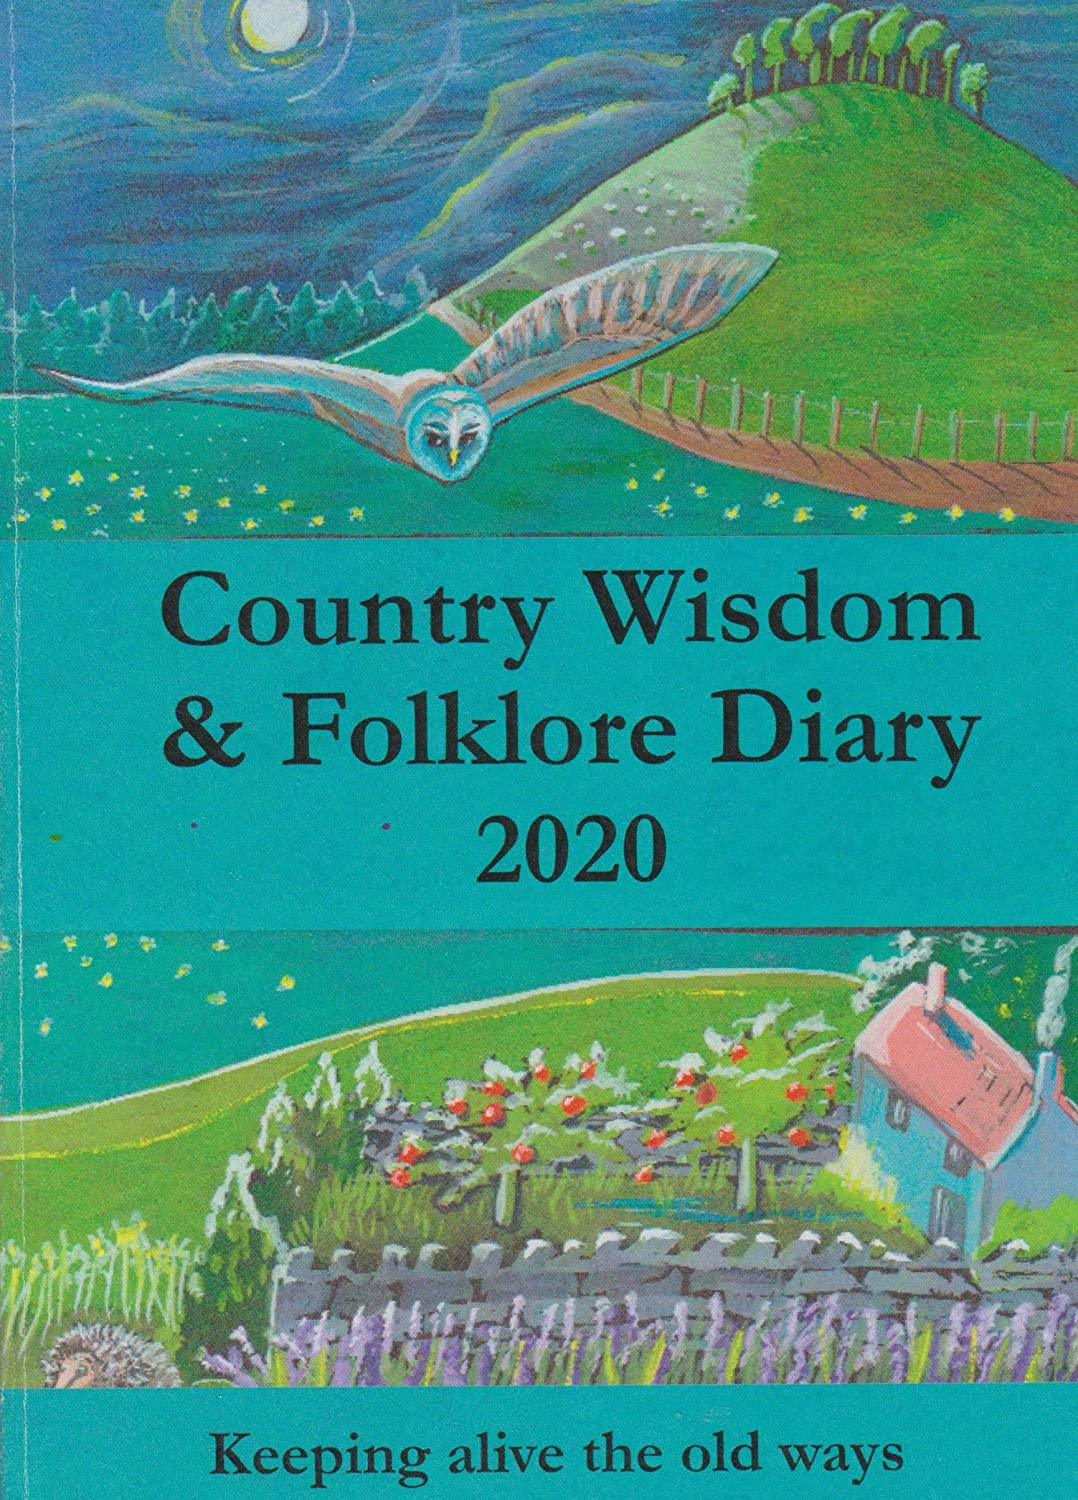 Country Wisdom and Folklore Diary 2020 | The Best 2020 Pagan and Witchy Planners | WitchcraftedLife.com